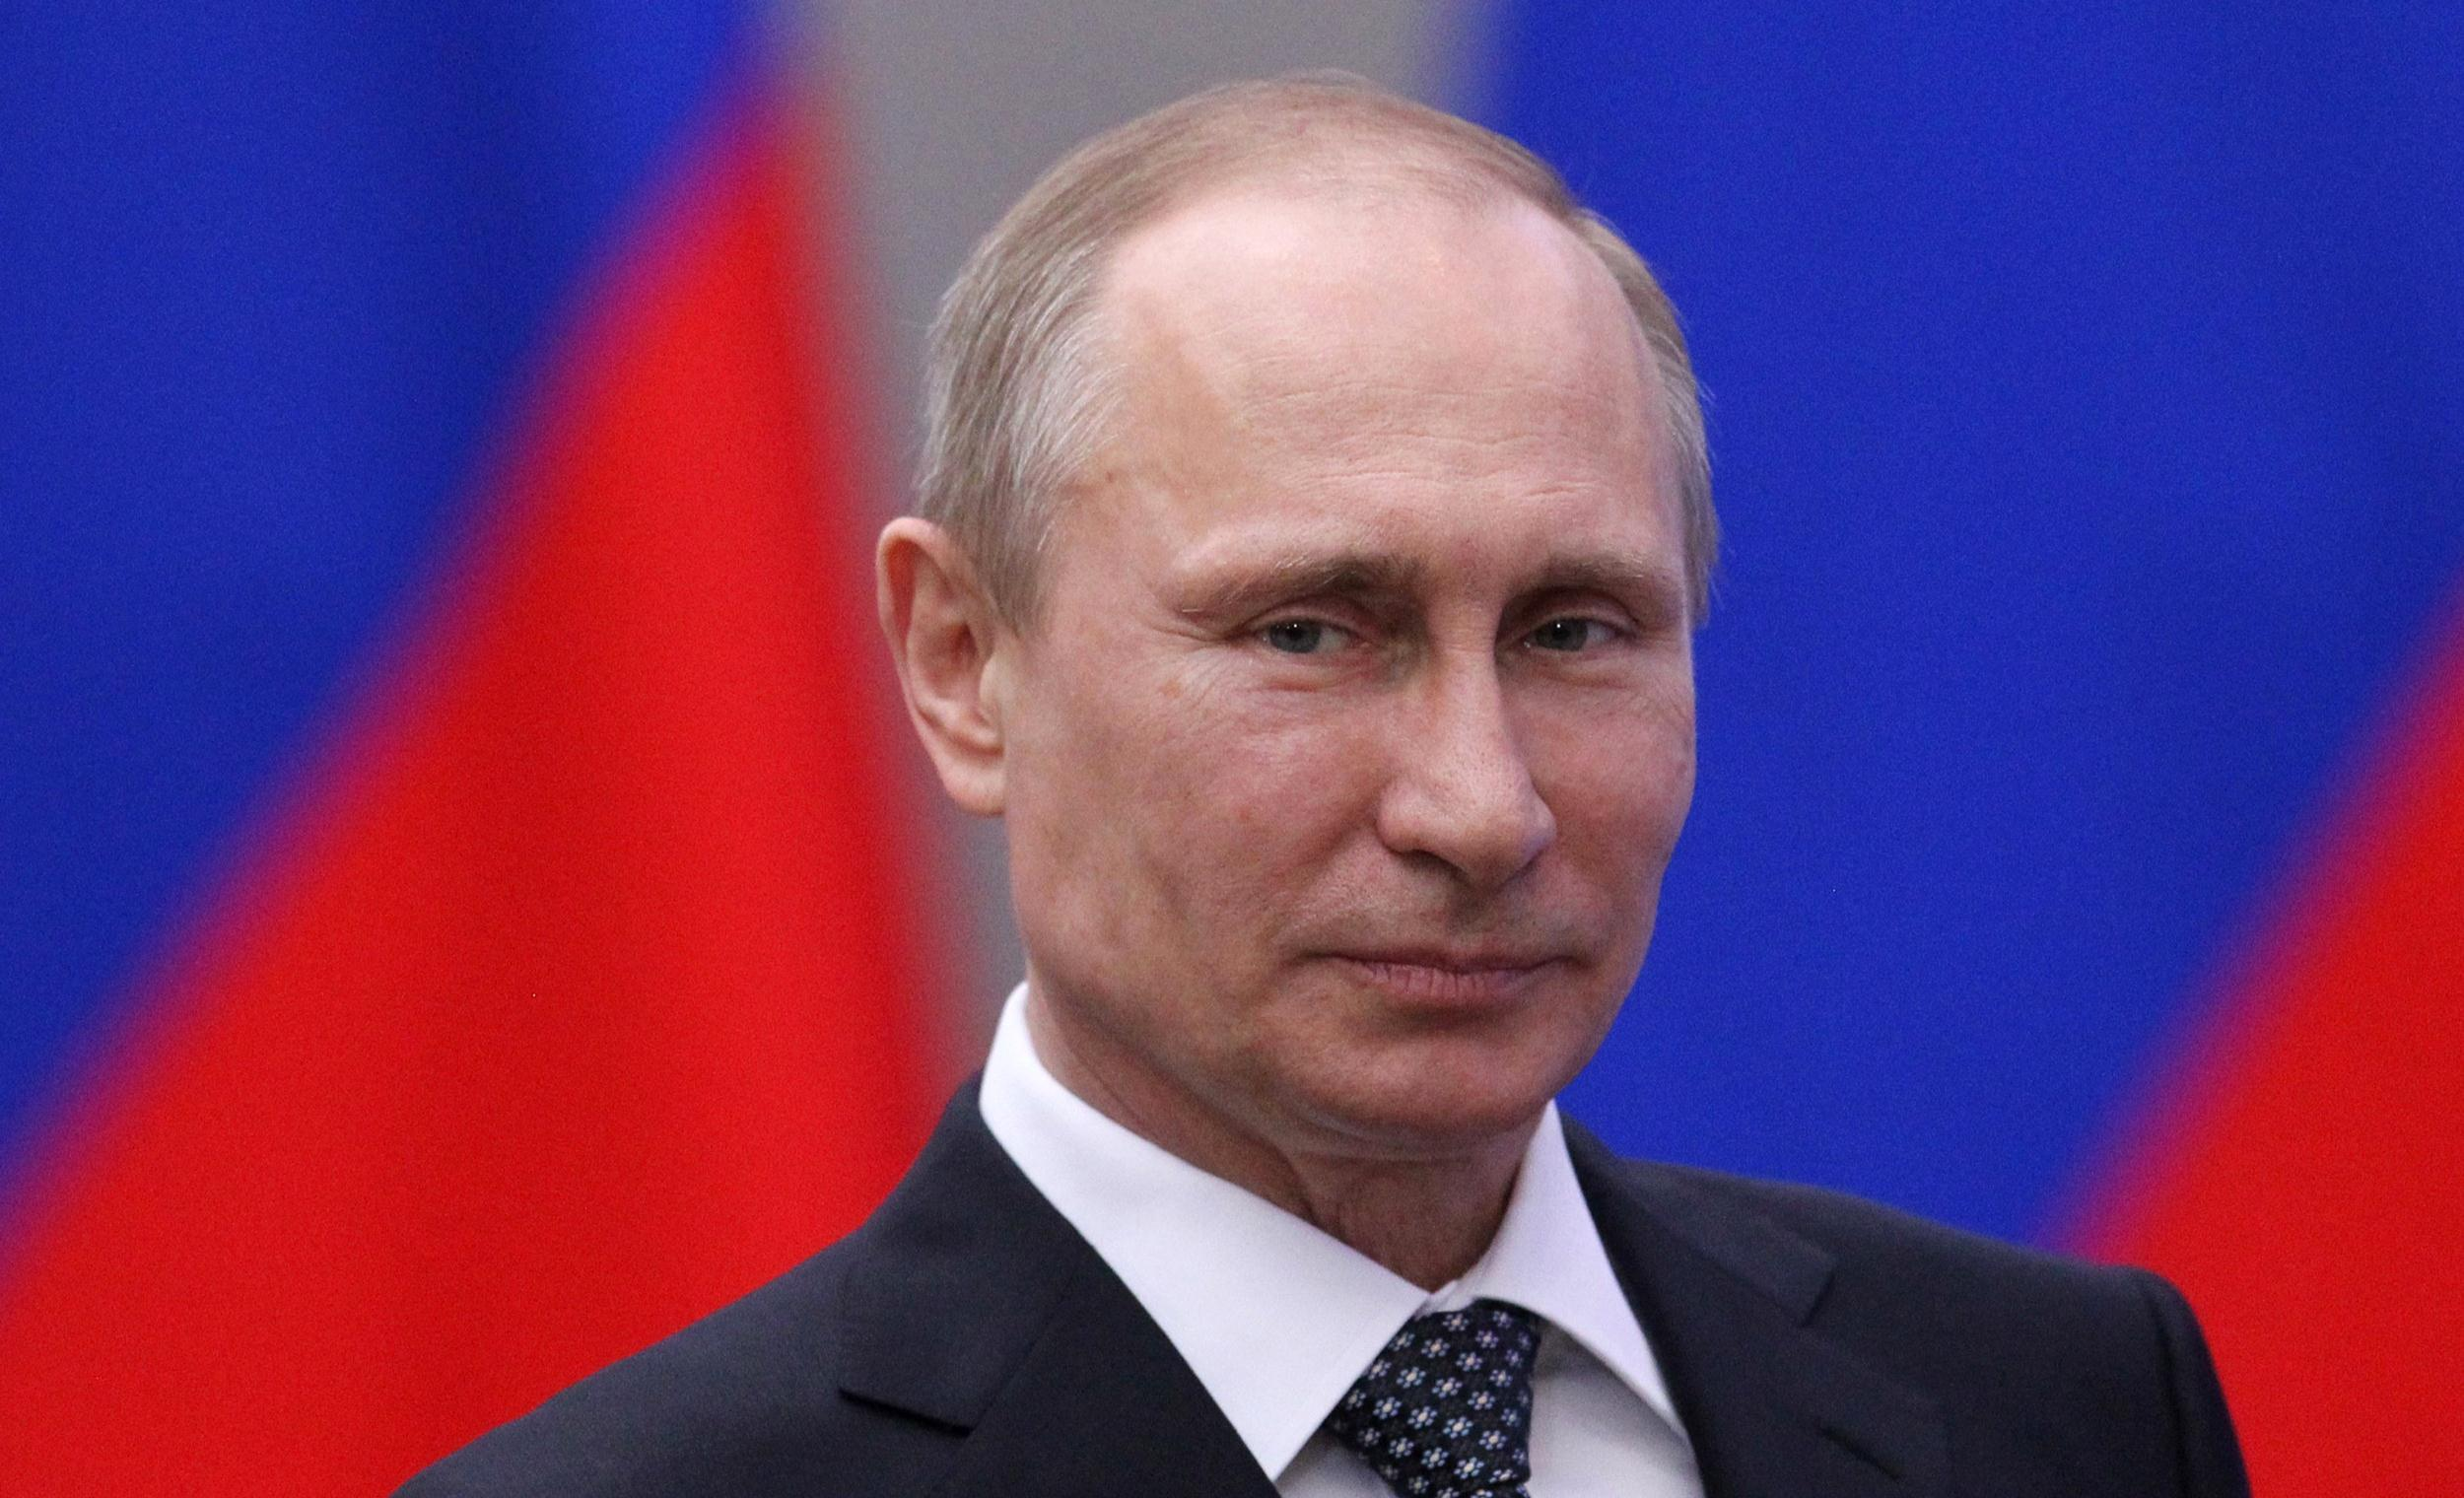 Russian President Vladimir Putin. By MARIAJONER (Own work) [CC BY-SA 4.0 (http://creativecommons.org/licenses/by-sa/4.0)], via Wikimedia Commons